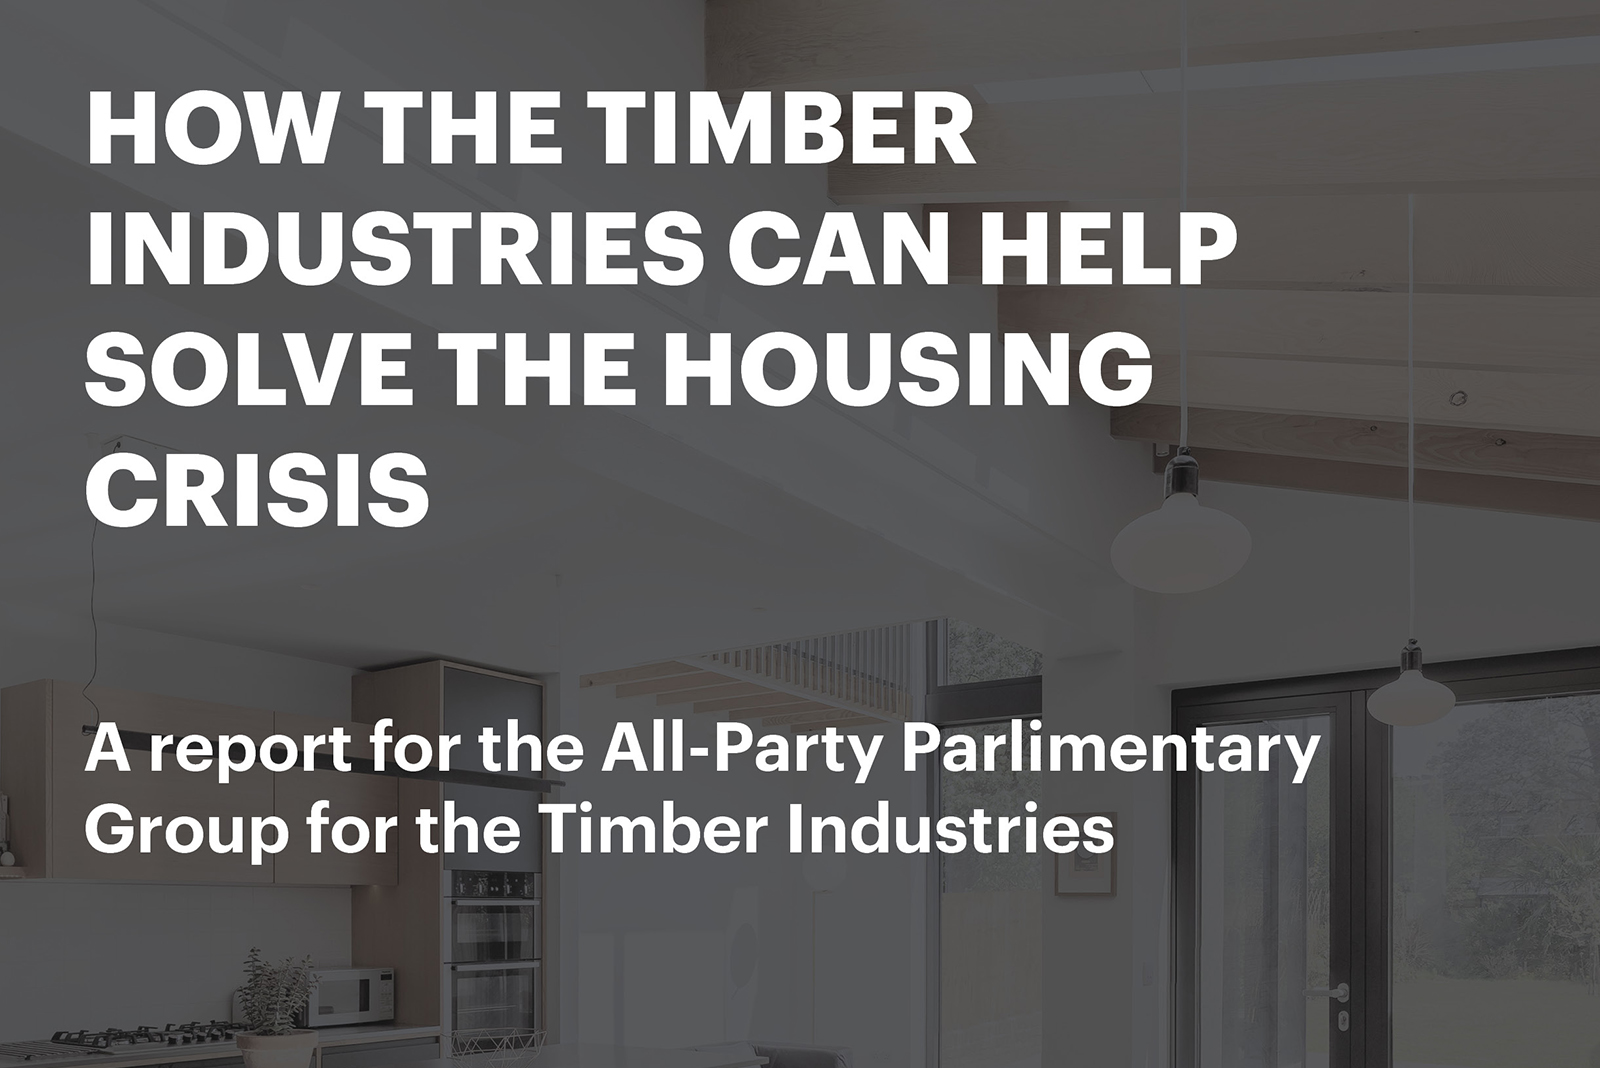 How the timber industries can help solve the housing crisis